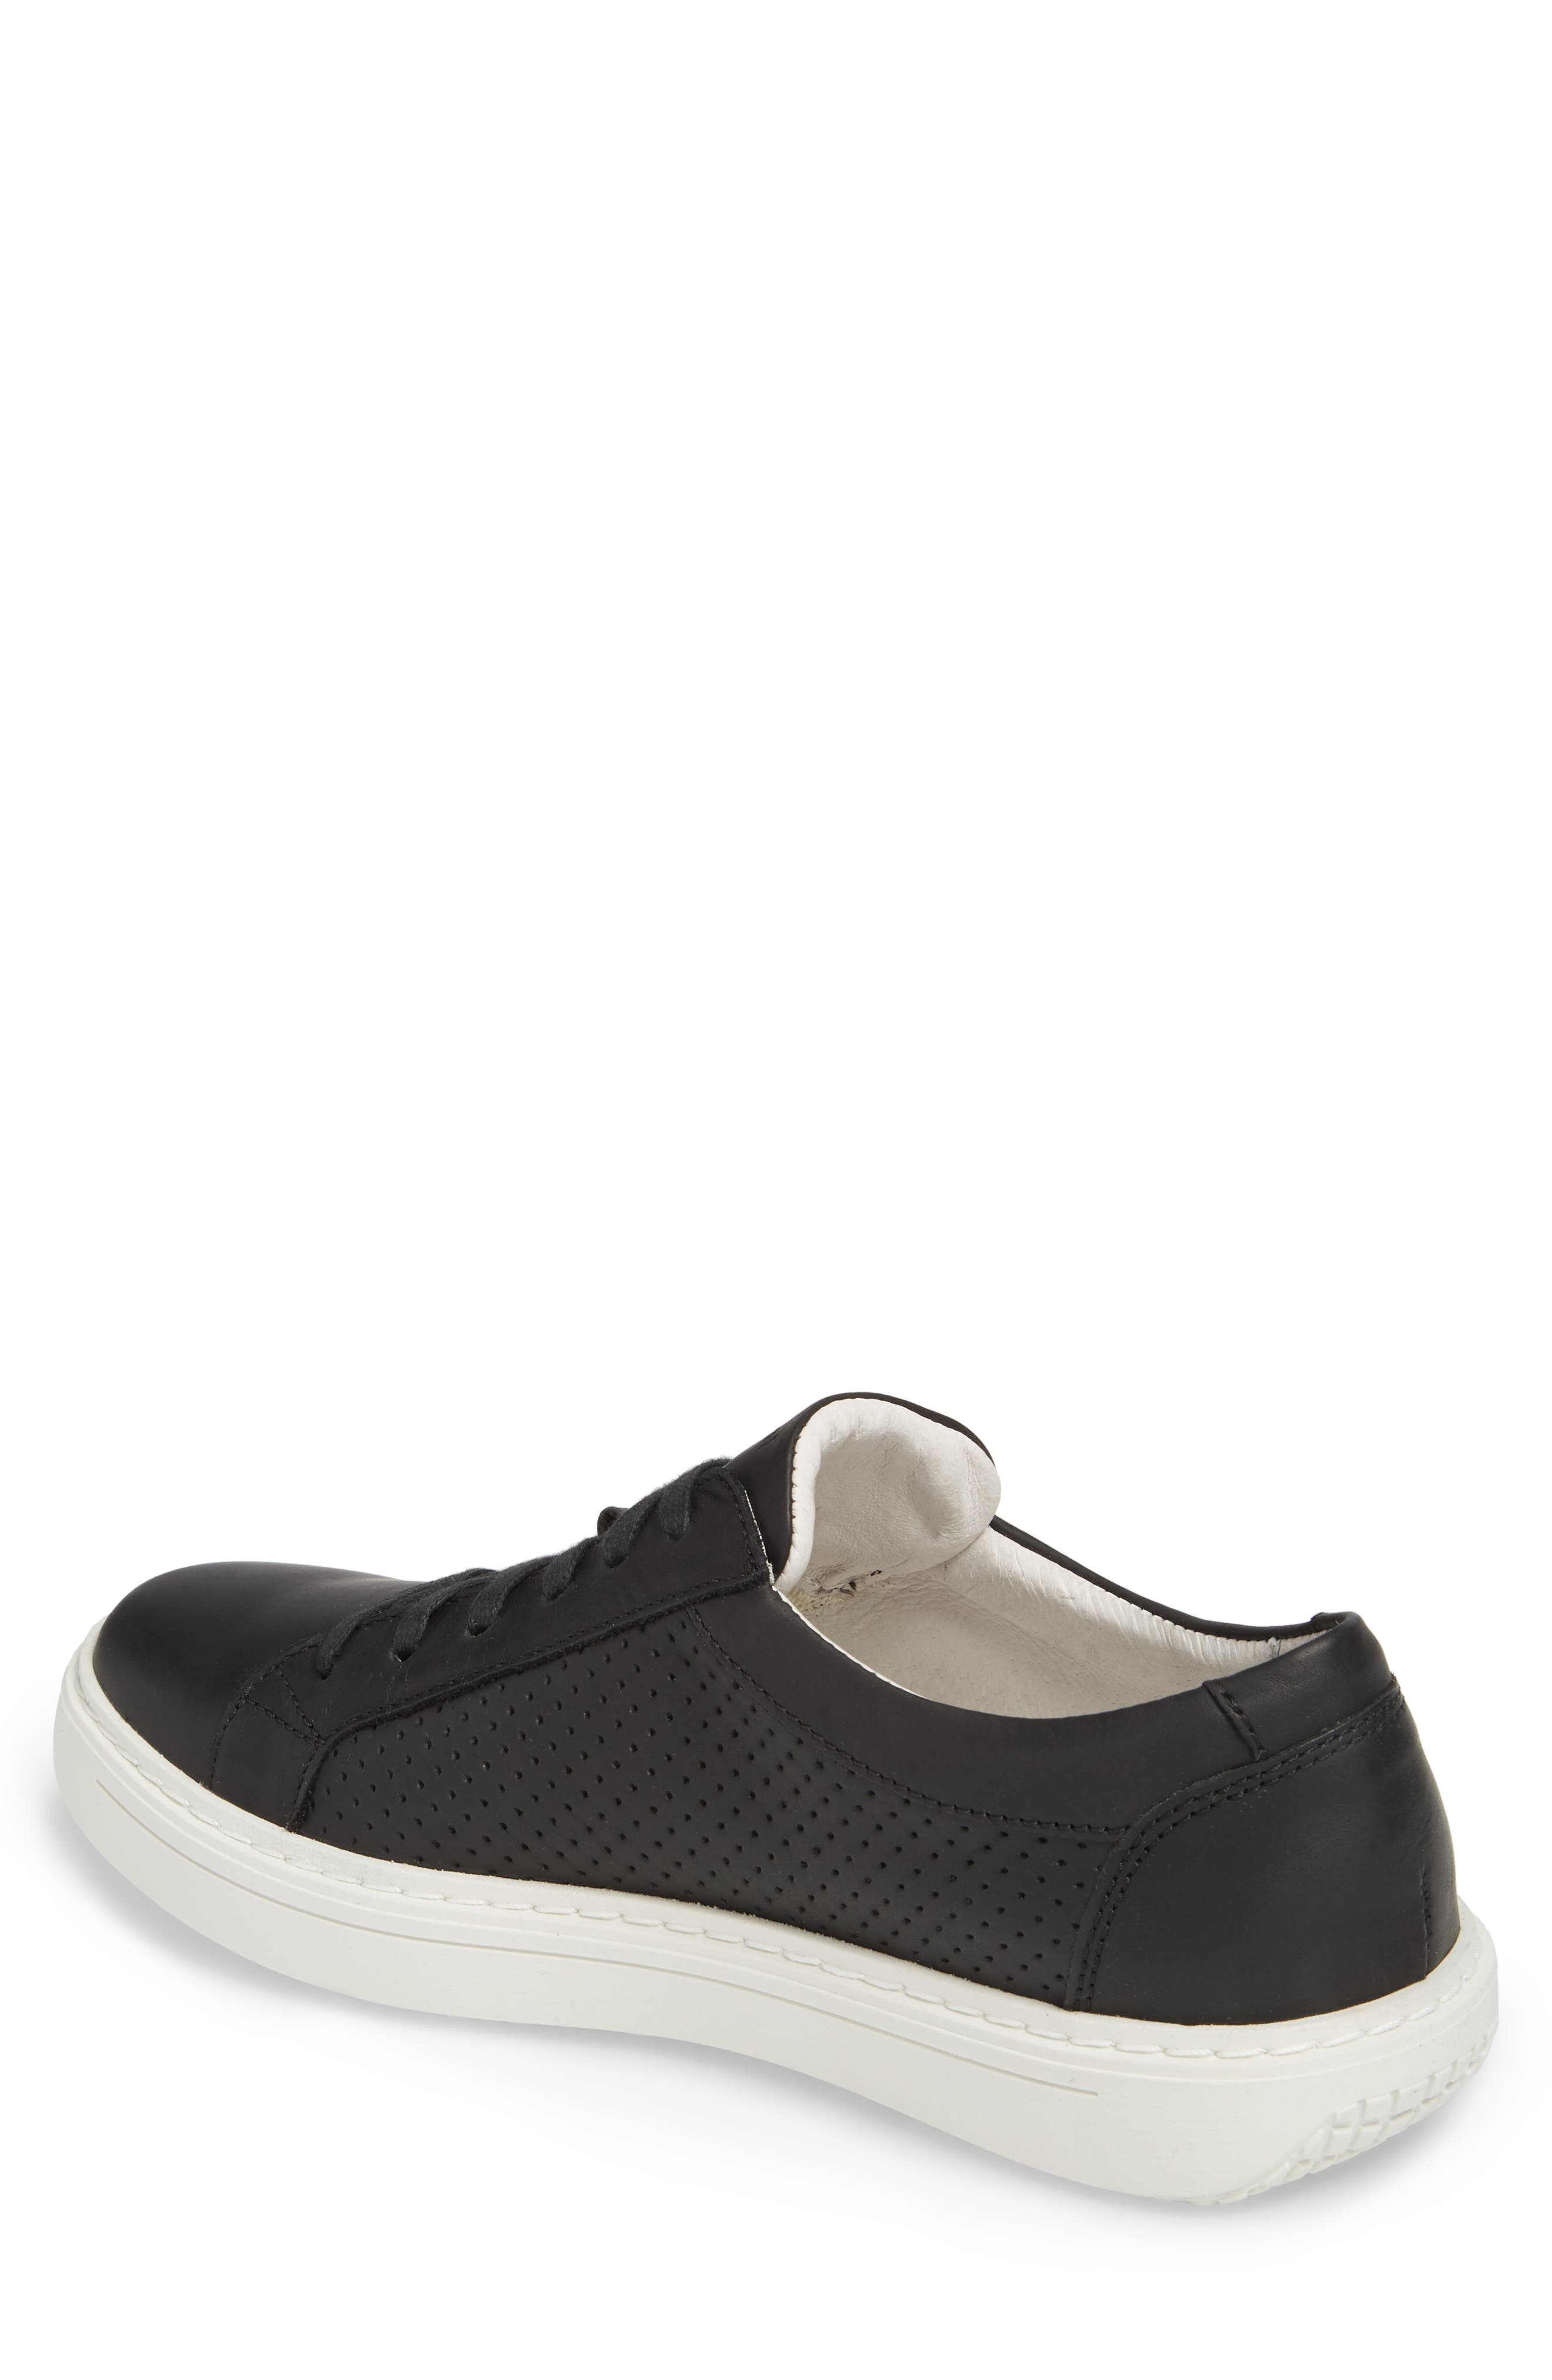 JOSEF SEIBEL, Quentin 13 Perforated Sneaker, Alternate thumbnail 2, color, 005